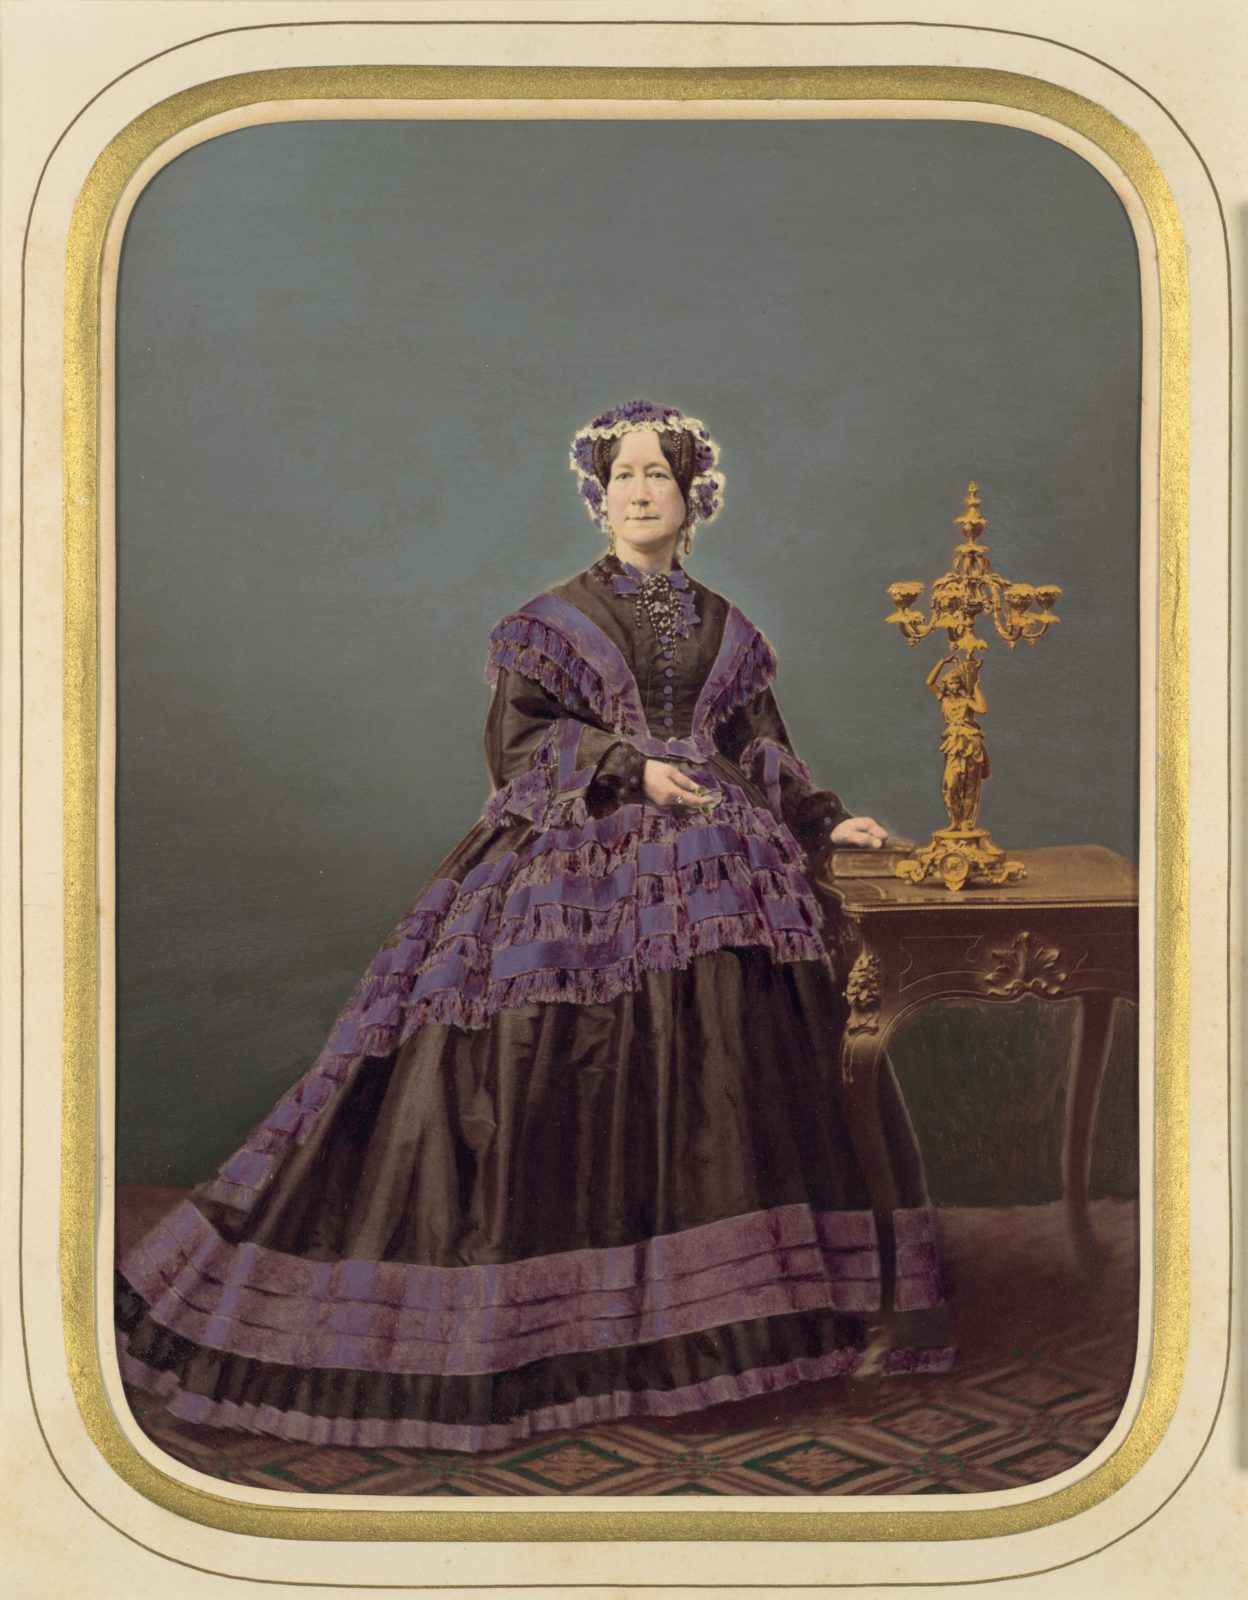 Mary Carrick Riggs, Dresden